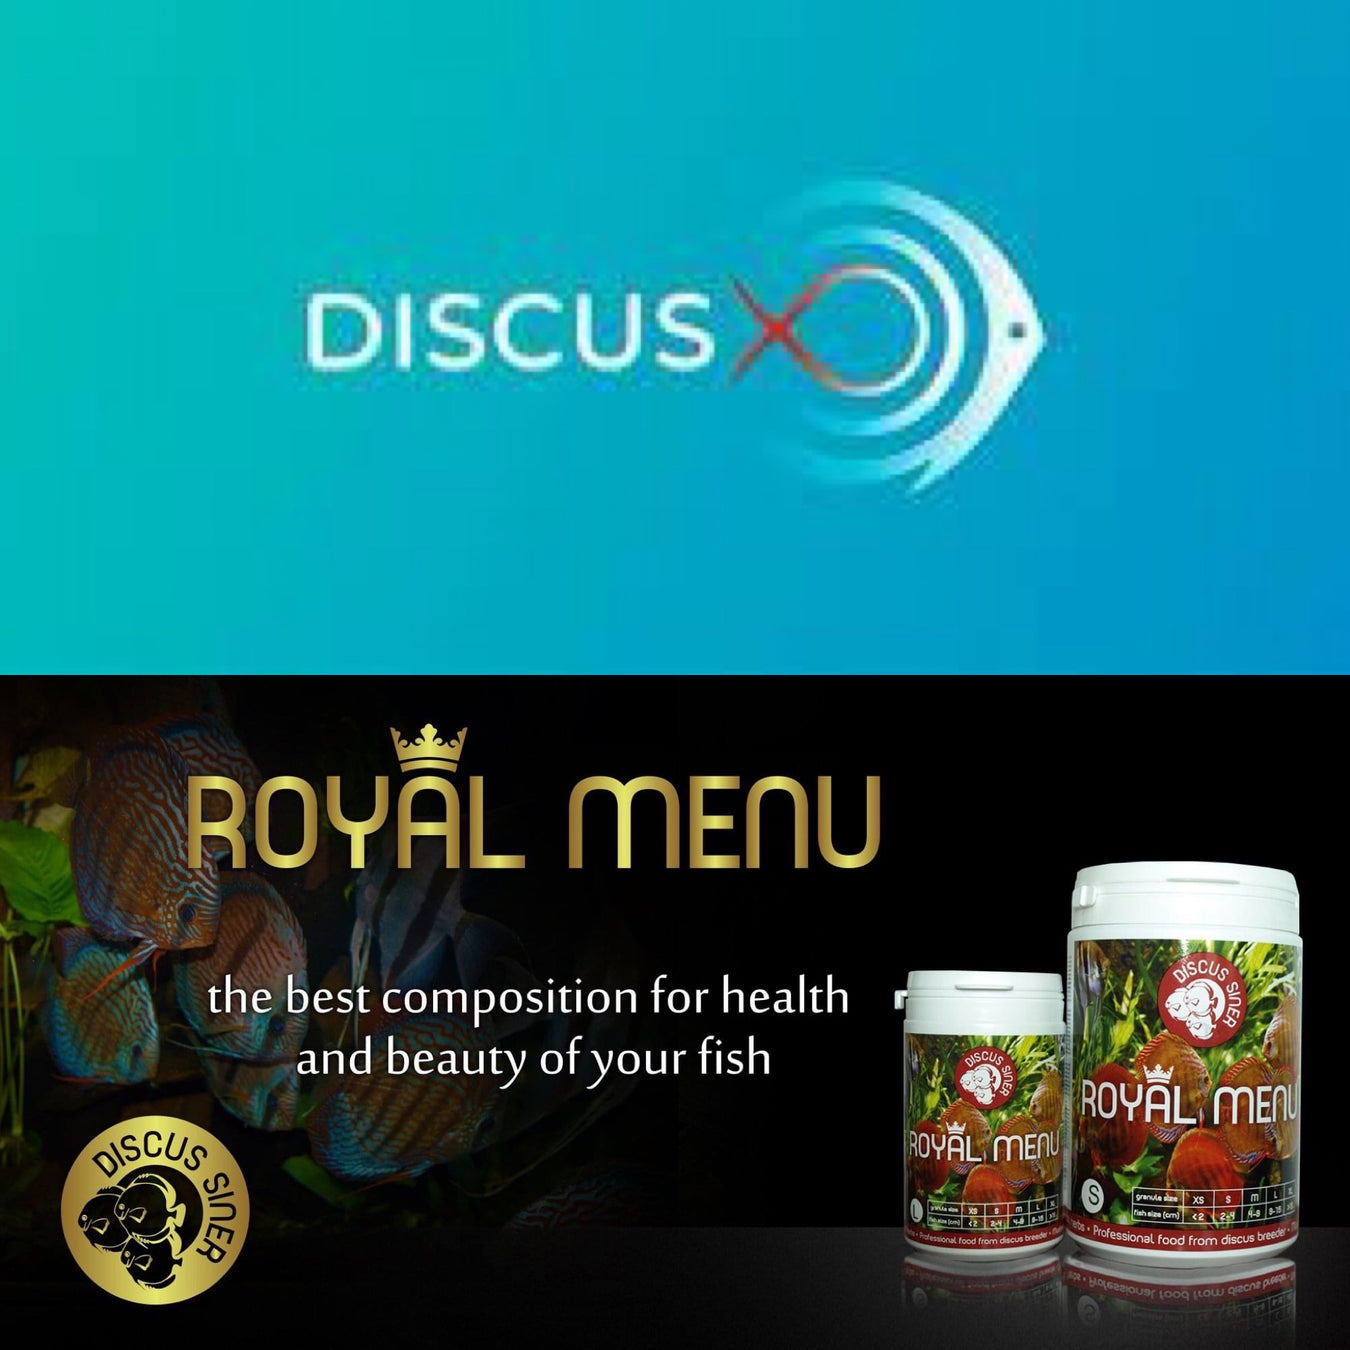 DiscusX / Royal Menu